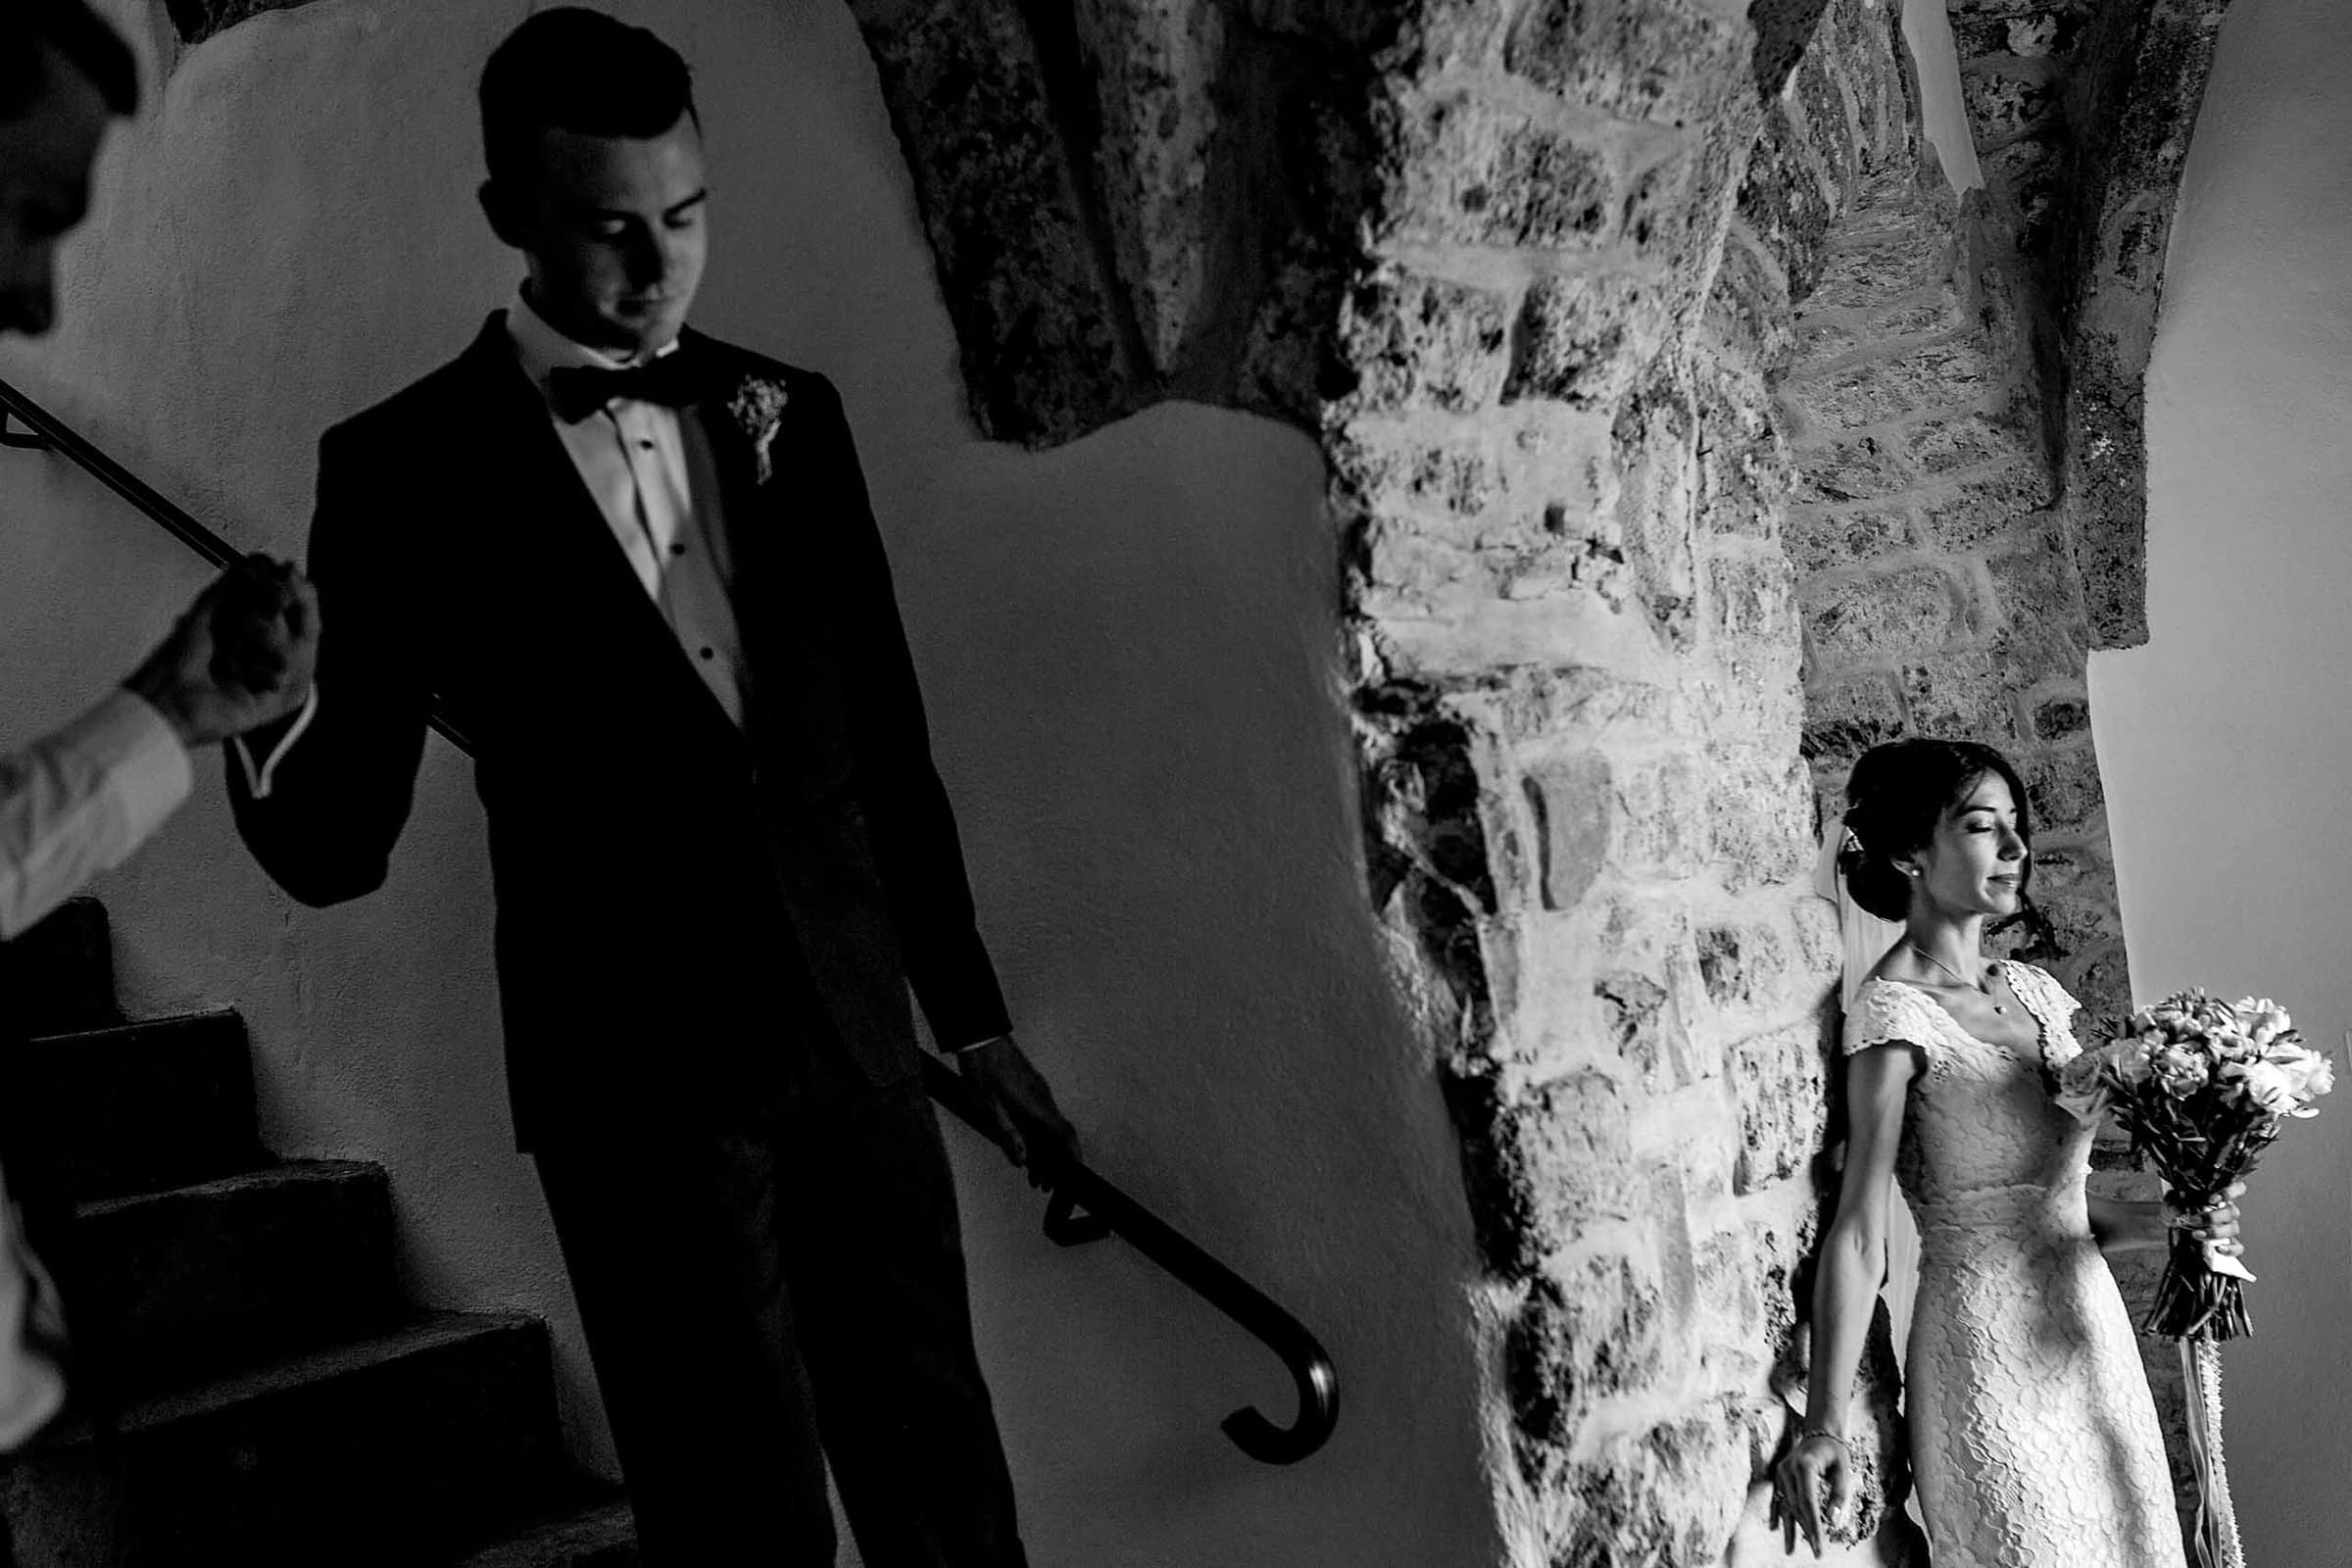 Groom being led to be with his bride without looking before their Chateau Zen wedding ceremony in the South of France.